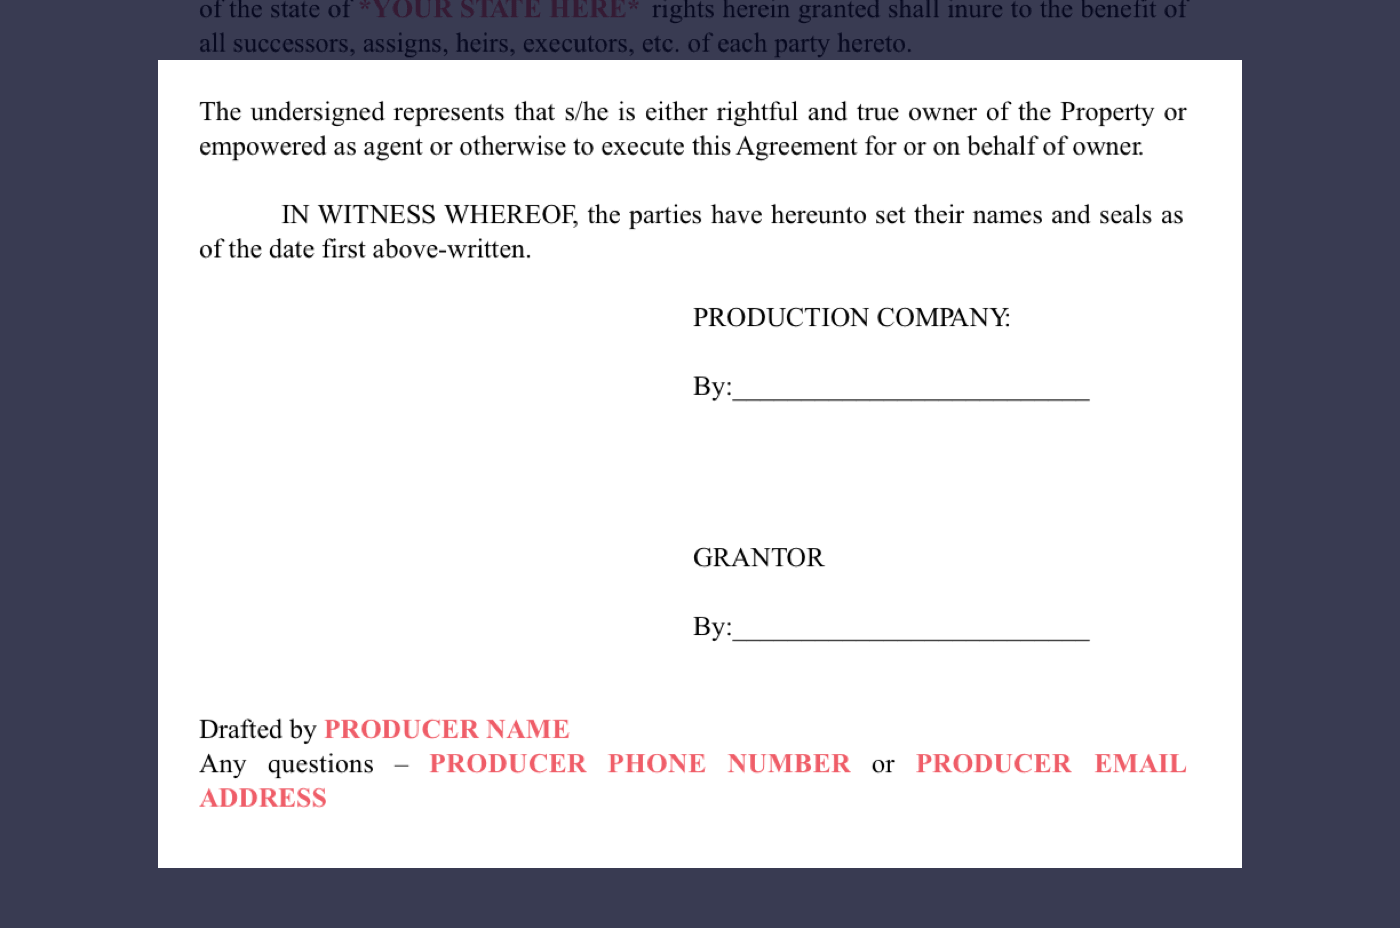 8 - Film Location Release Form Excerpt - Producers Signatures